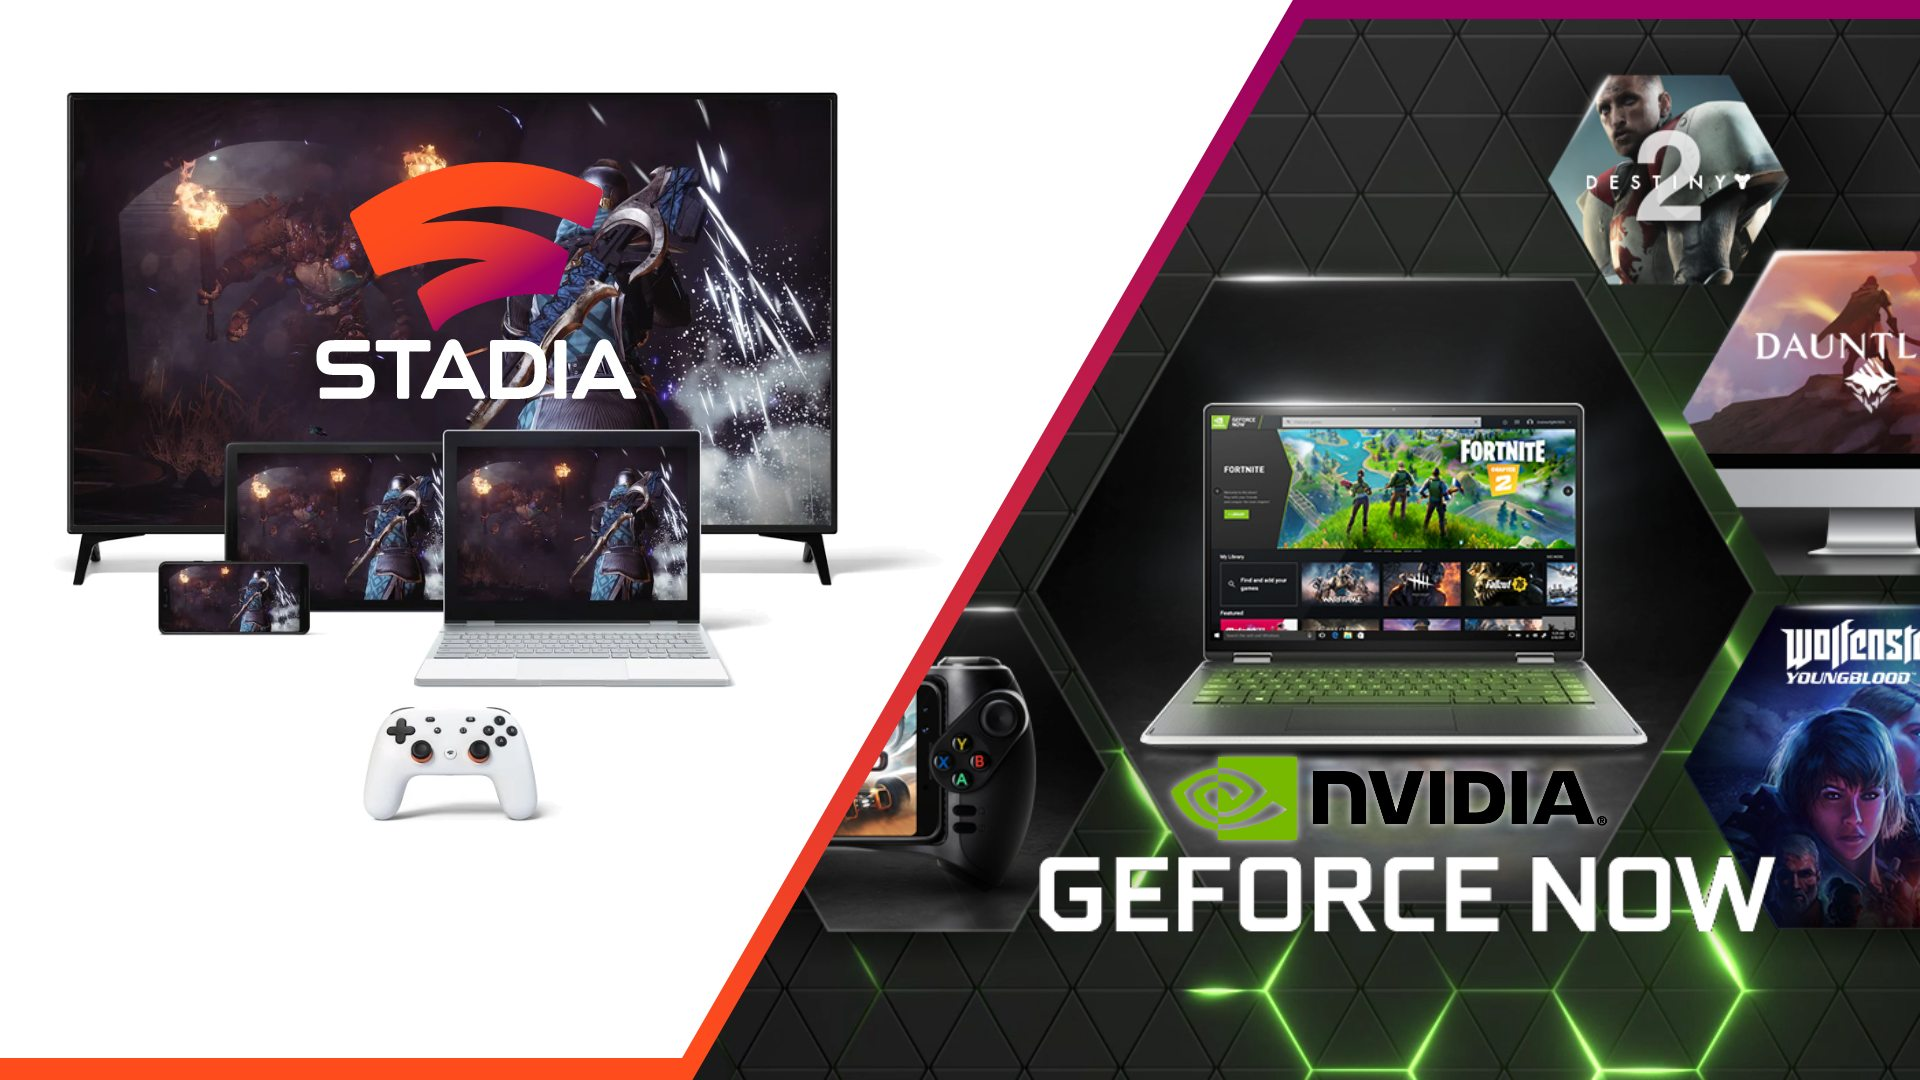 Upcoming NVIDIA GeForce Now Chromebook support could be trouble for Stadia